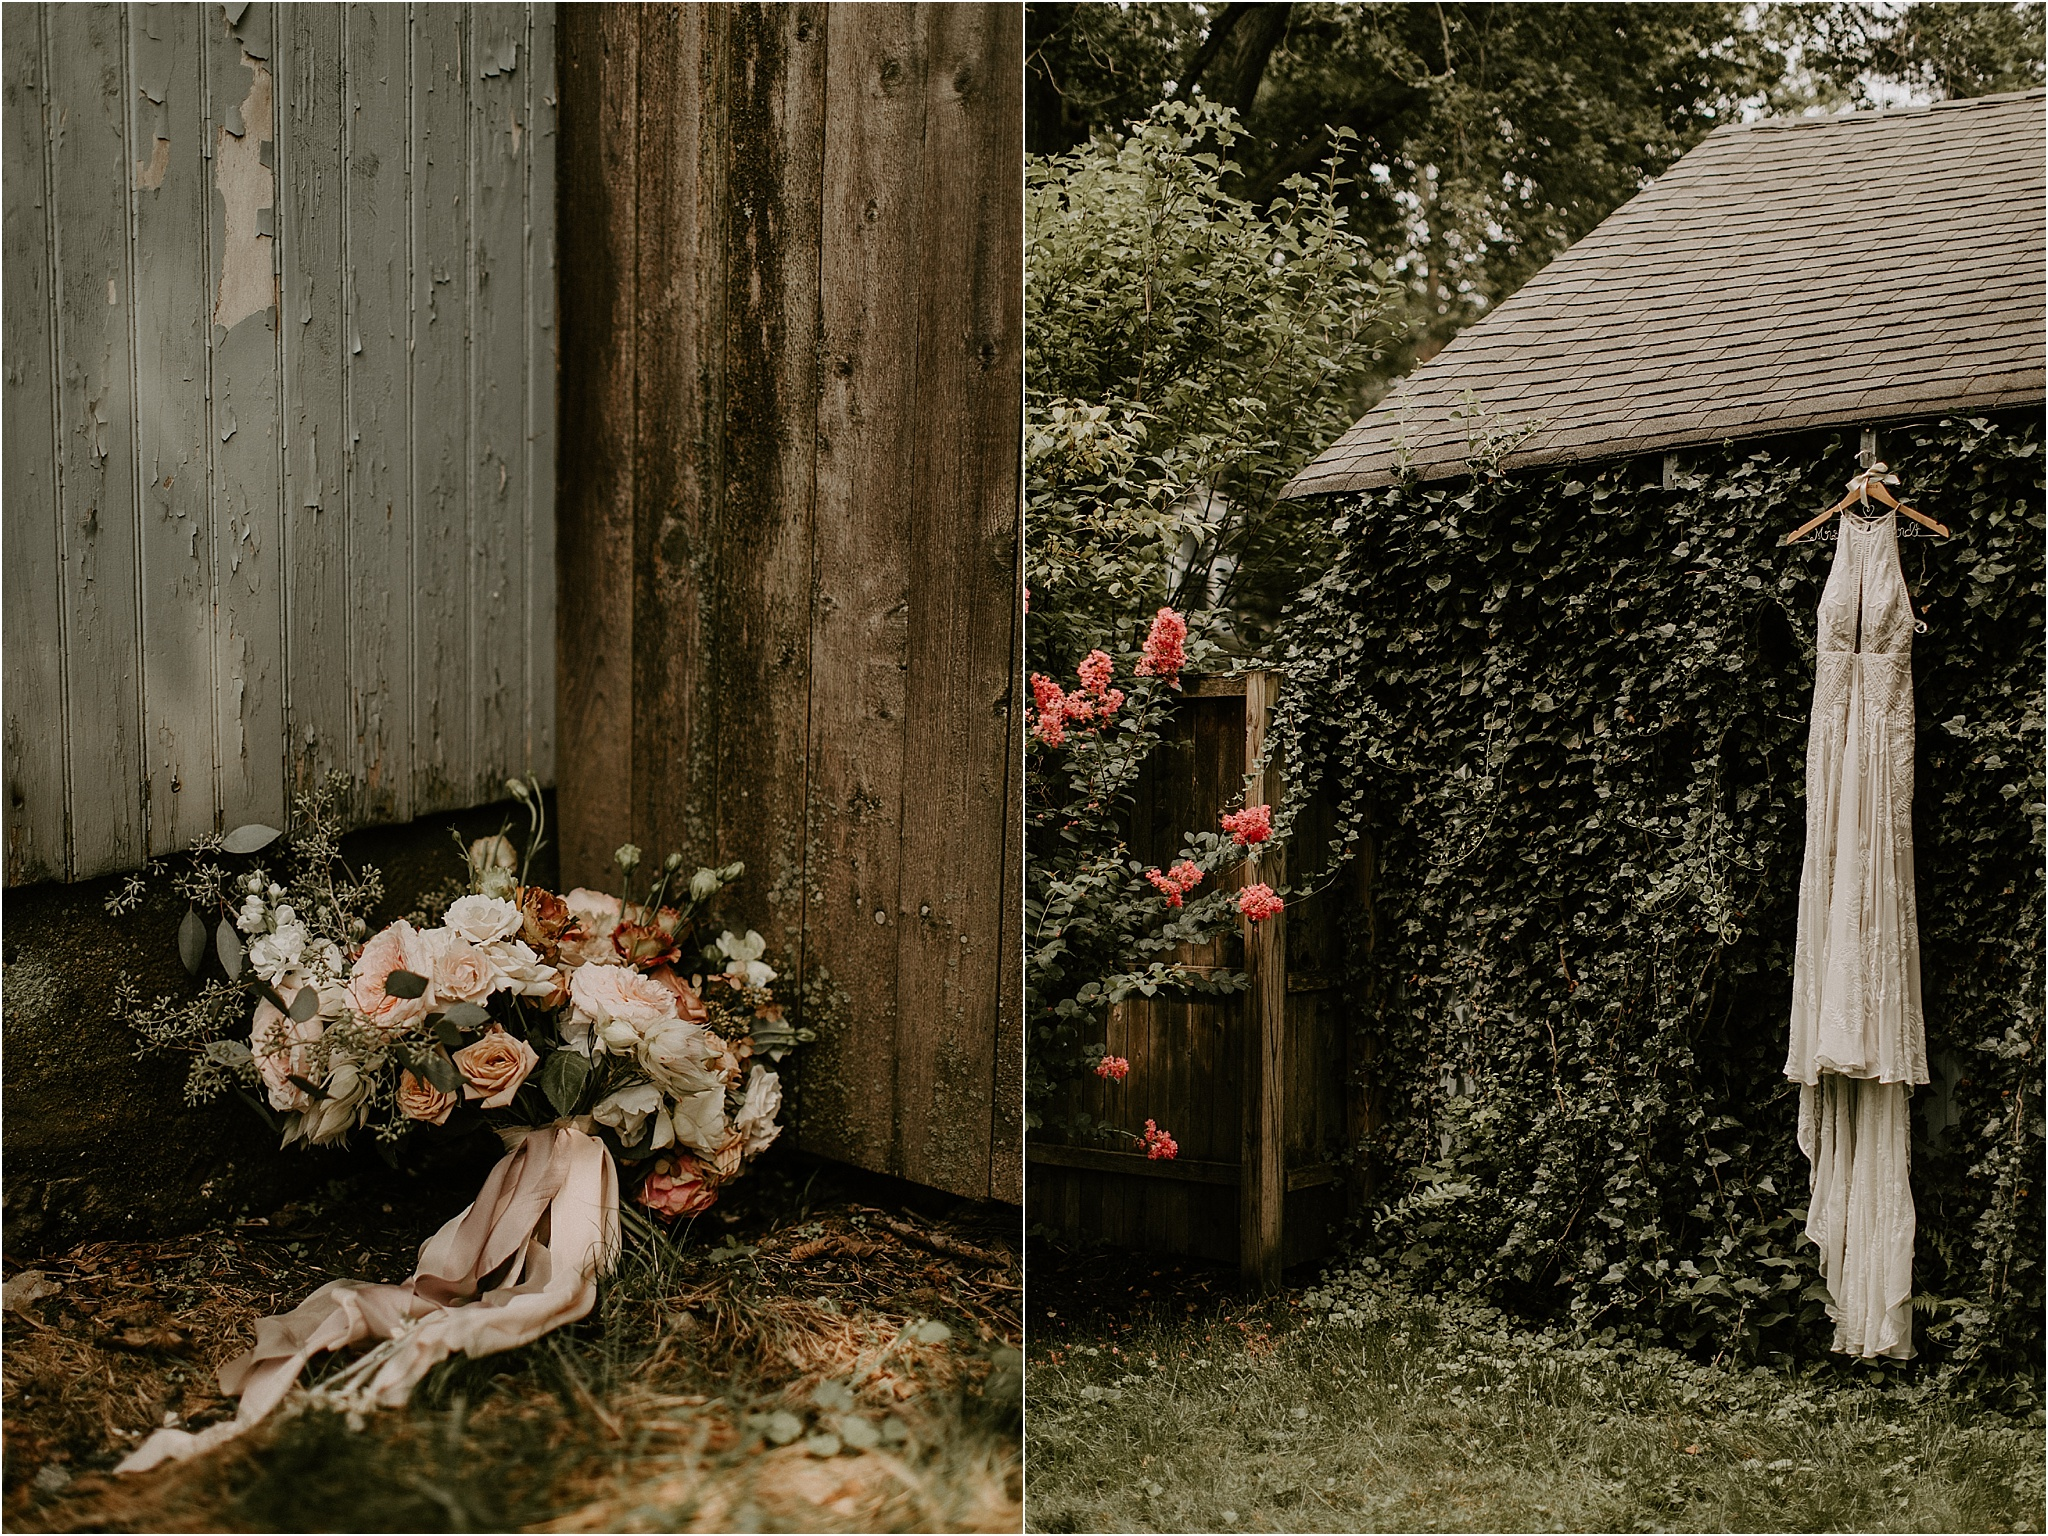 Sarah_Brookhart_Hortulus_Farm_Garden_and_Nursey_Wedding_Photographer_0002.jpg